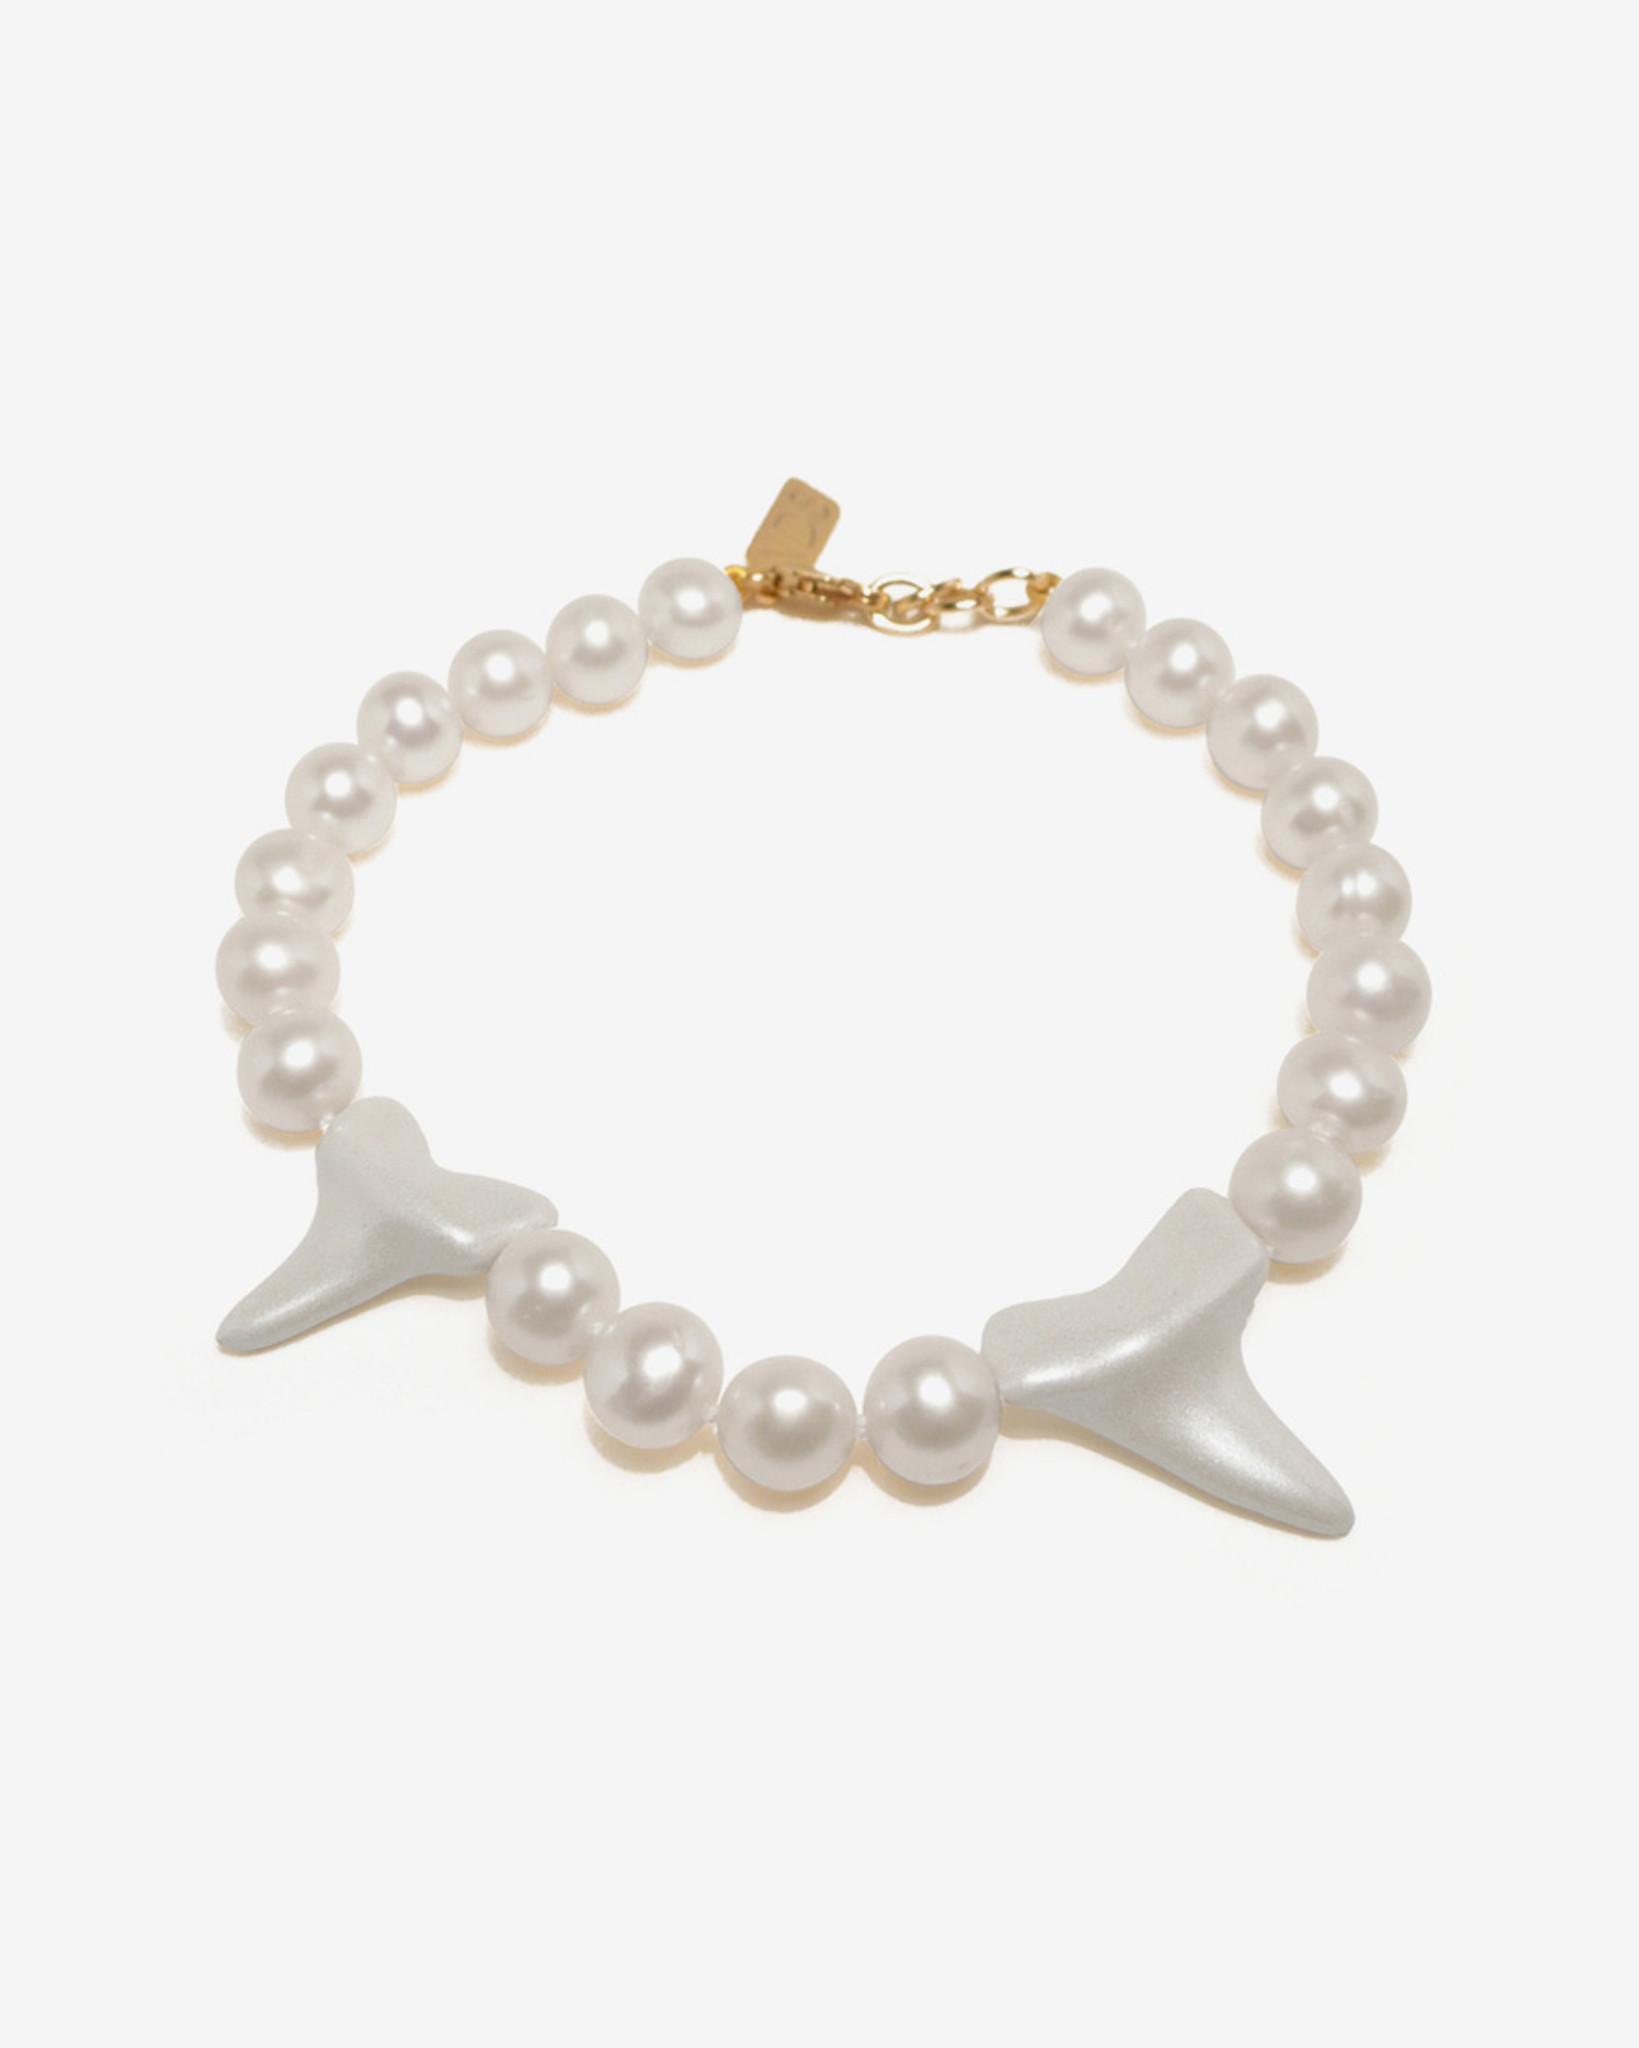 Cruelty Free Shark Teeth & Pearl Bracelet by Fine Jewelry Designer Nektar De Stagni